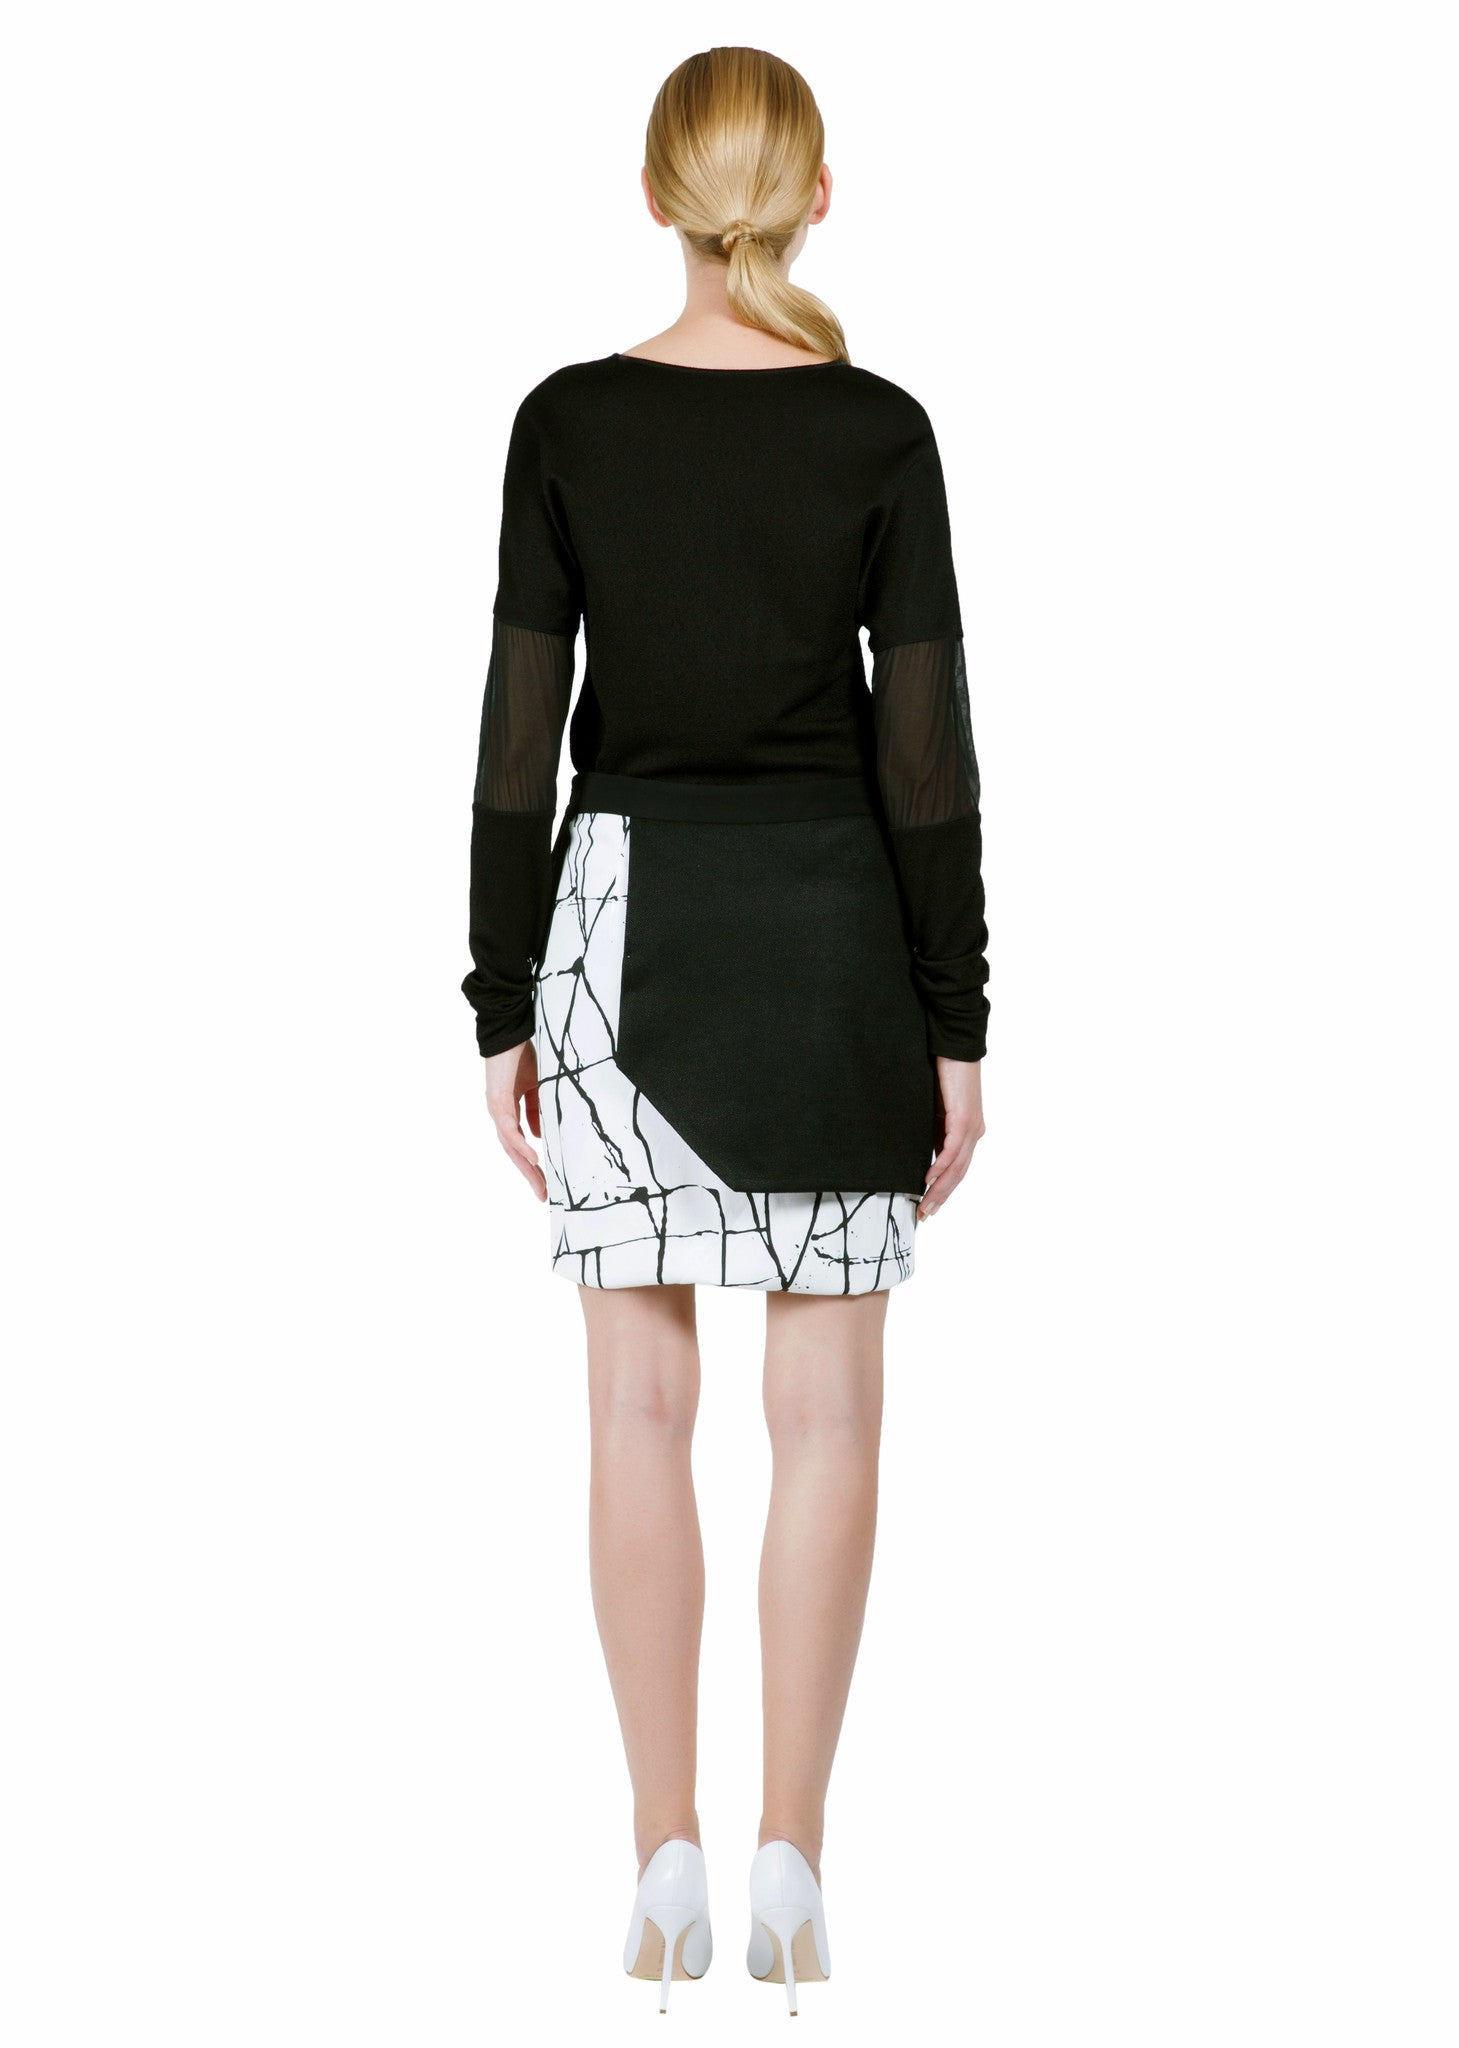 KARIGAM HALF MOON SKIRT